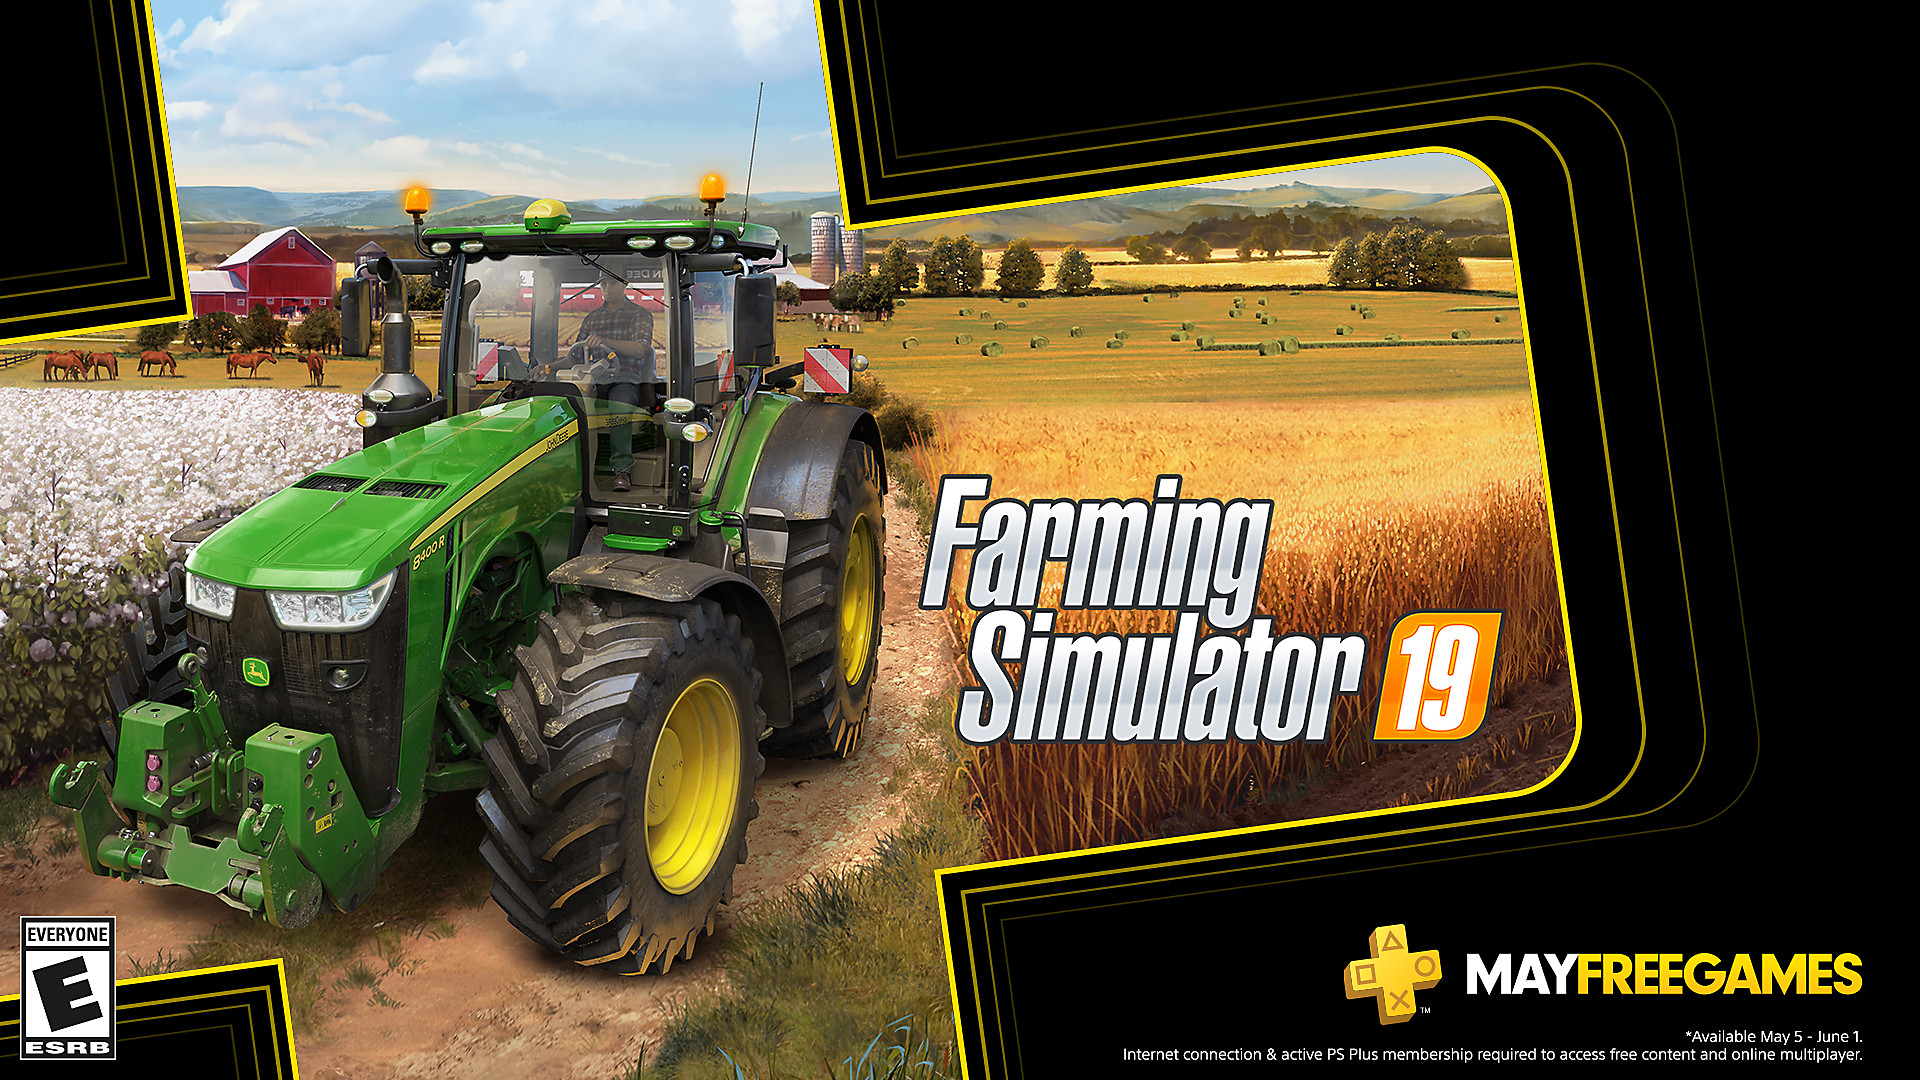 Click here to get Farming Simulator 19 free from the PlayStation Store for PlayStation Plus members